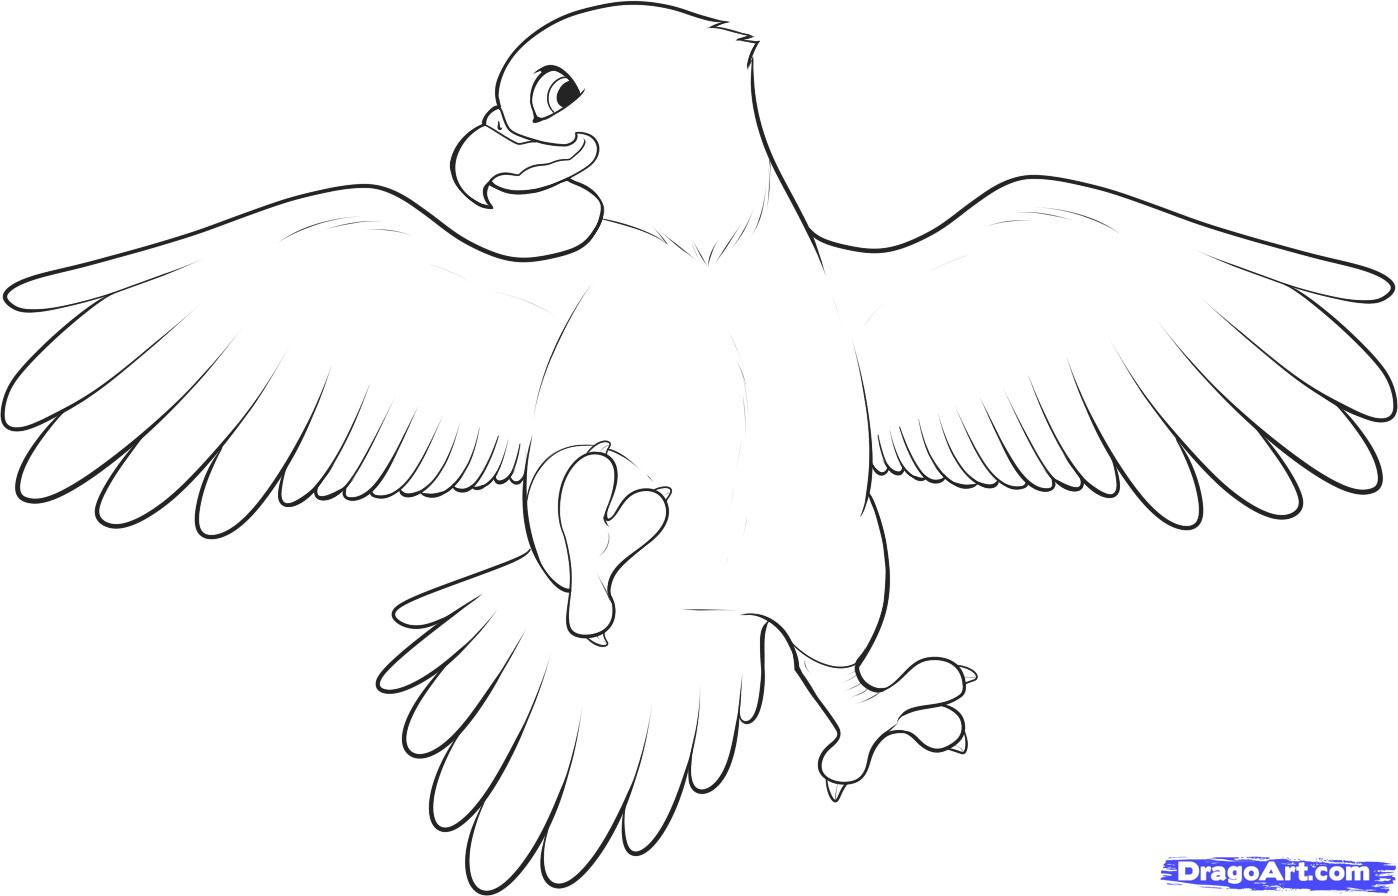 1398x896 Easy Eagle Drawing Eagle Drawing How To Draw A Tribal Eagle Step